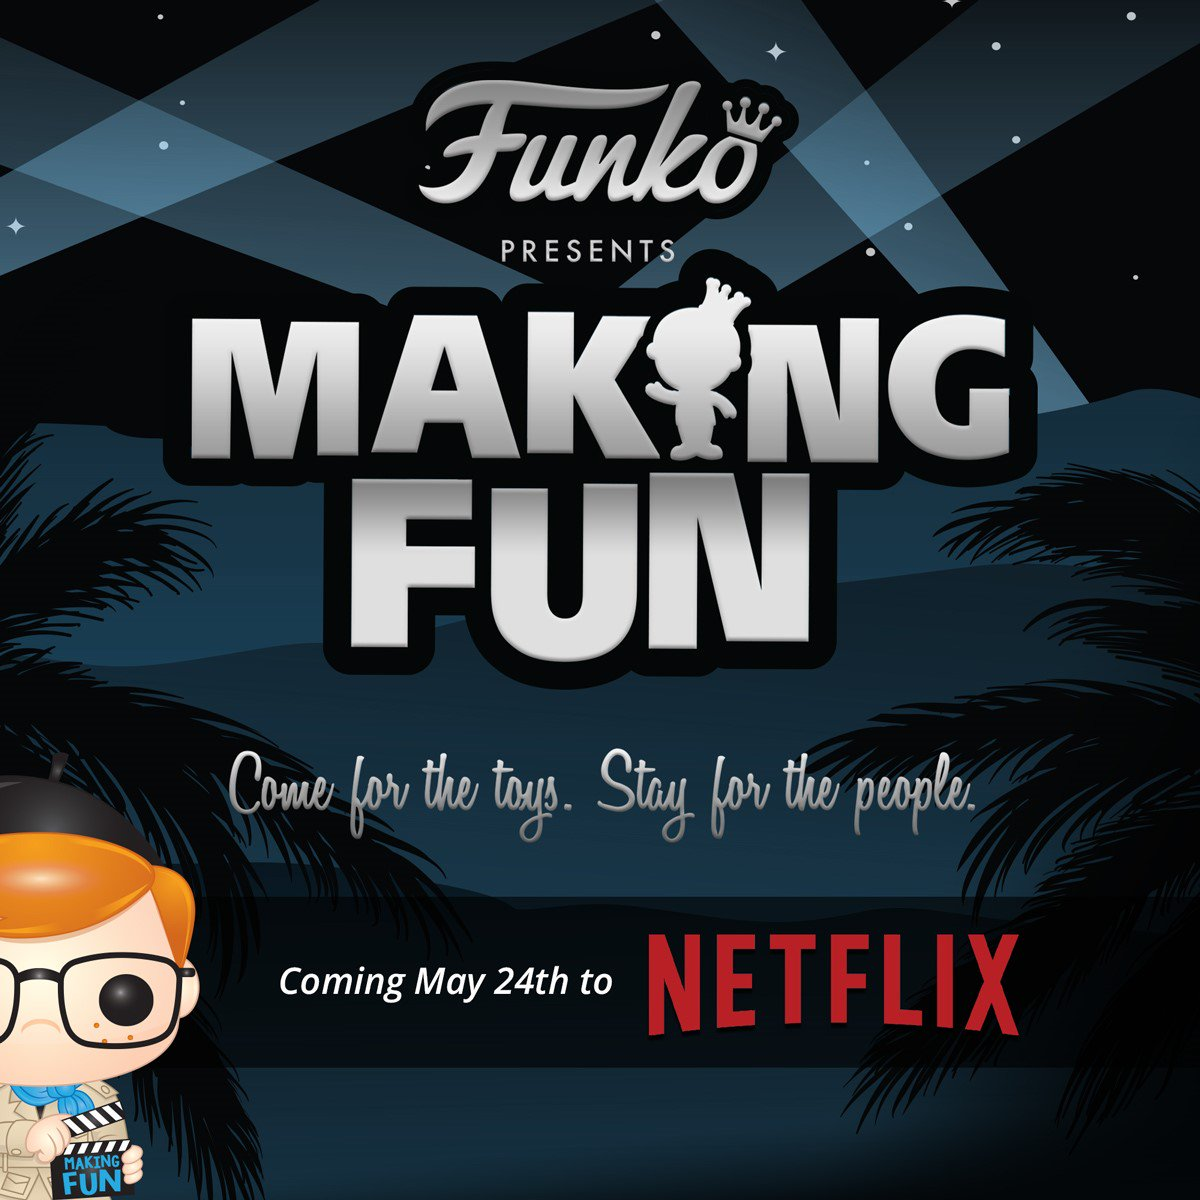 ICYMI - Making Fun - The Story of Funko will be available on Netflix starting May 24th! funko.com/blog/article/e…